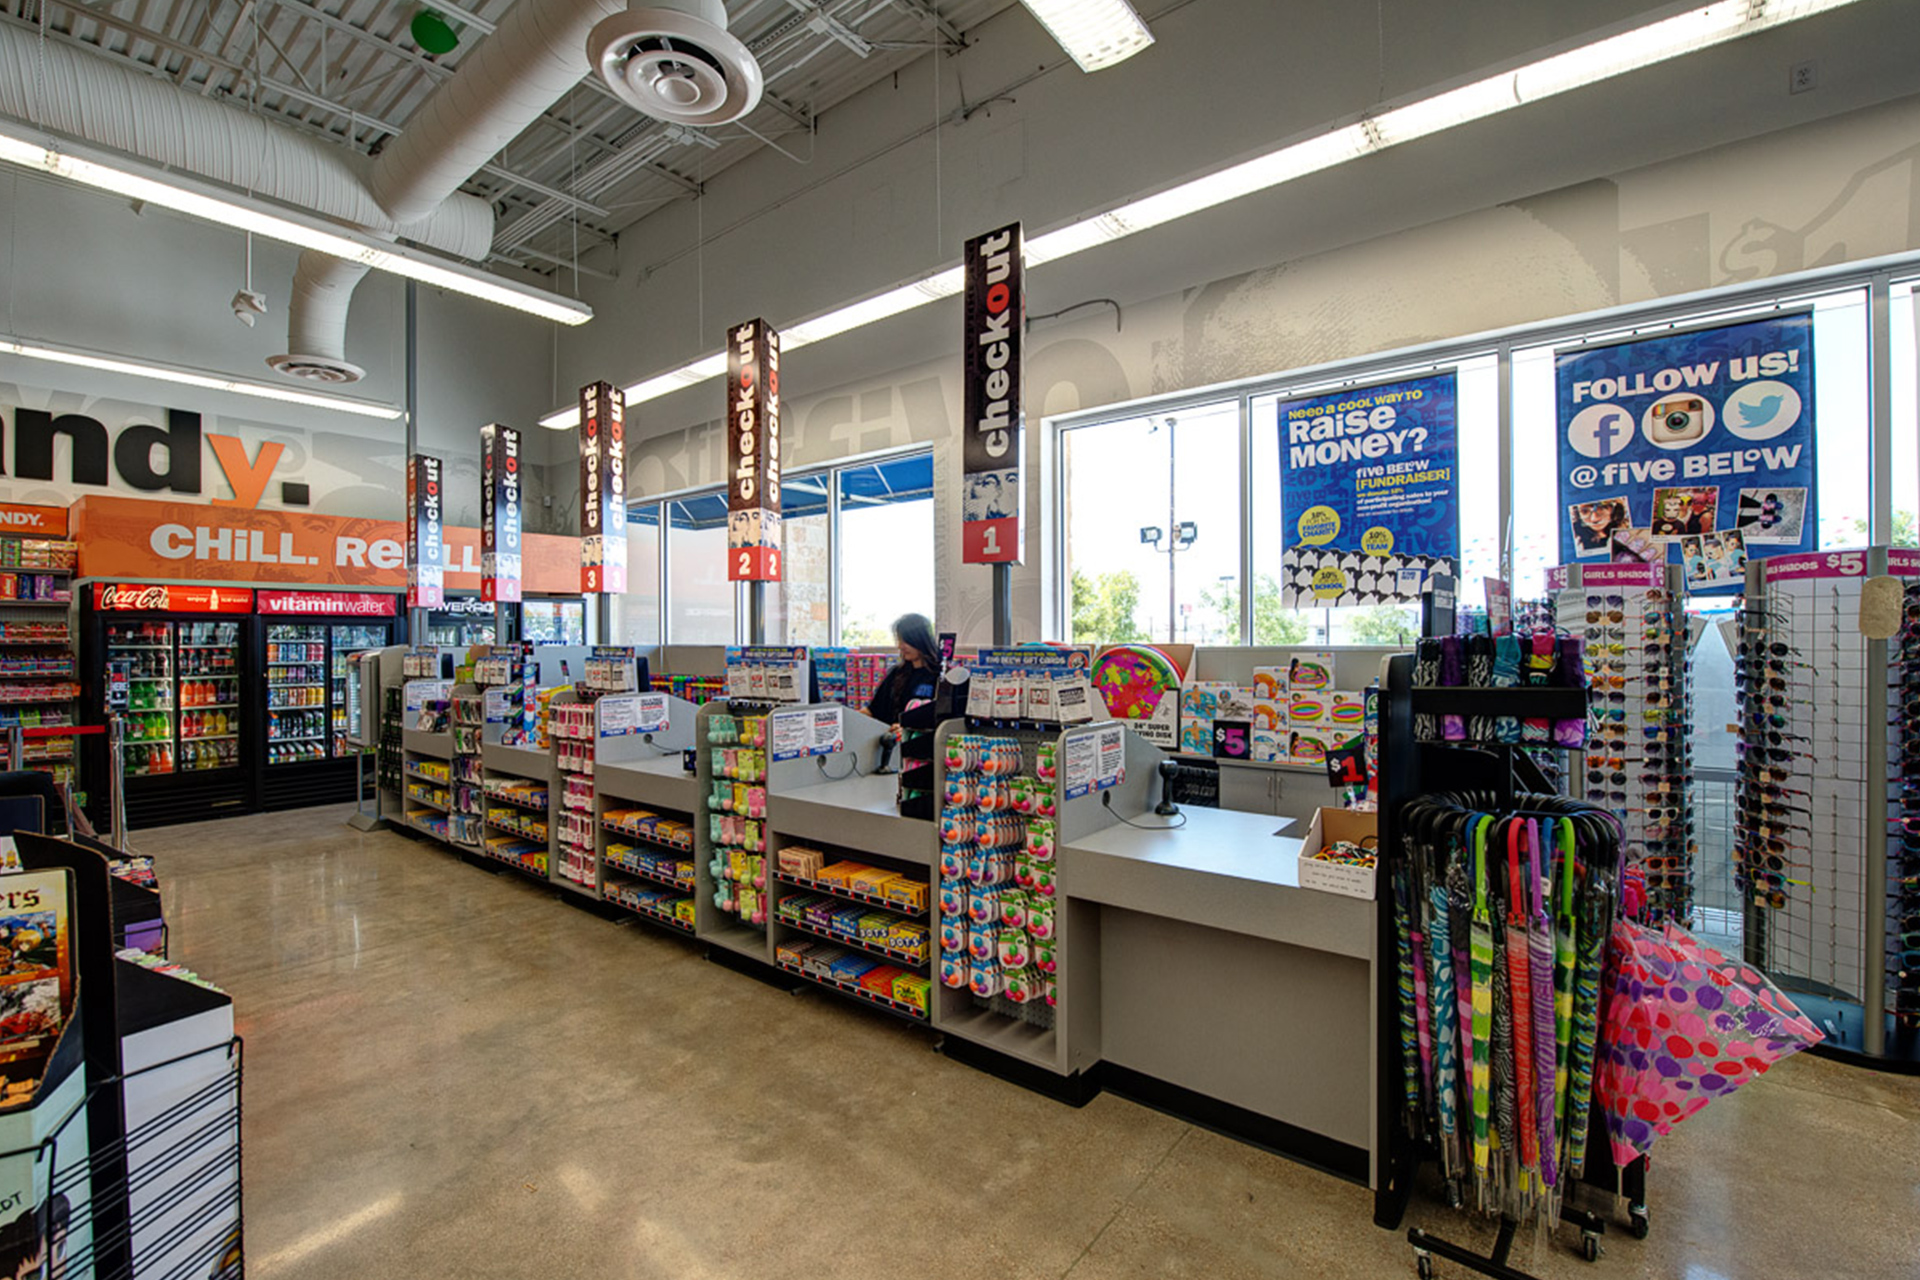 The Inside Of One Of Five Belows Existing Locations Image Credit Ucs Group Llc